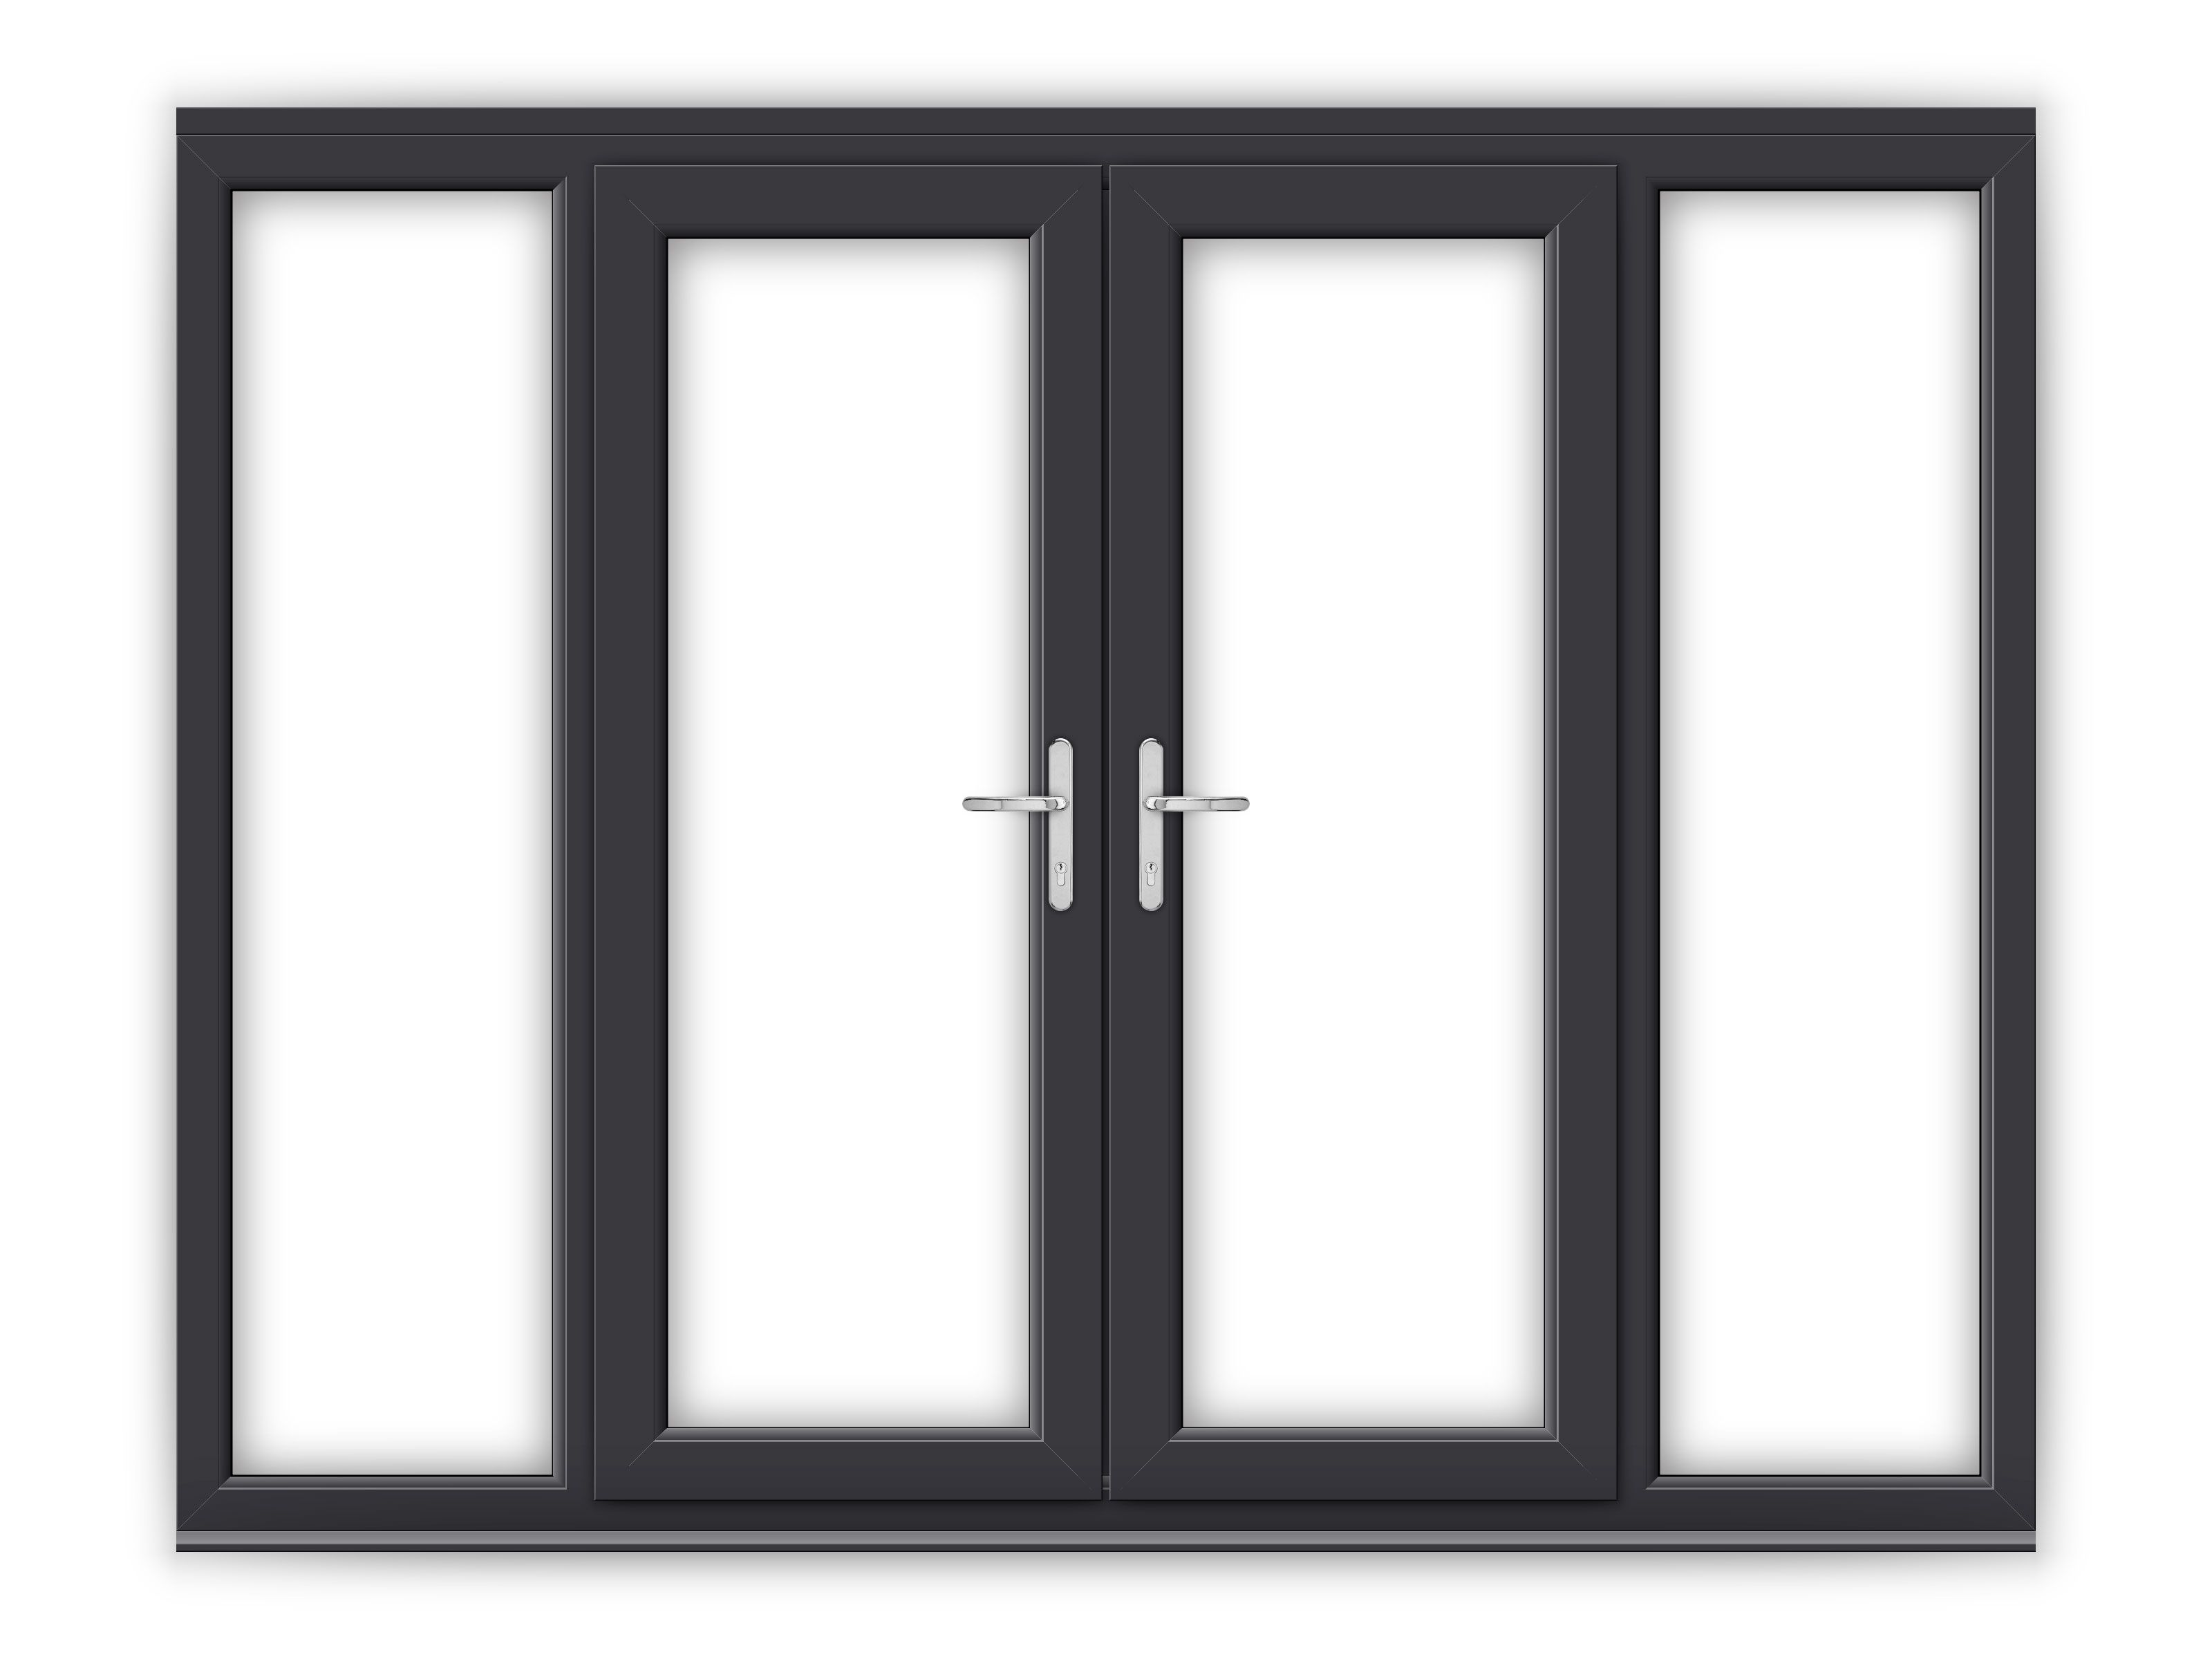 5ft Anthracite Grey Upvc French Doors With Wide Side Panels Upvc French Doors French Doors Upvc